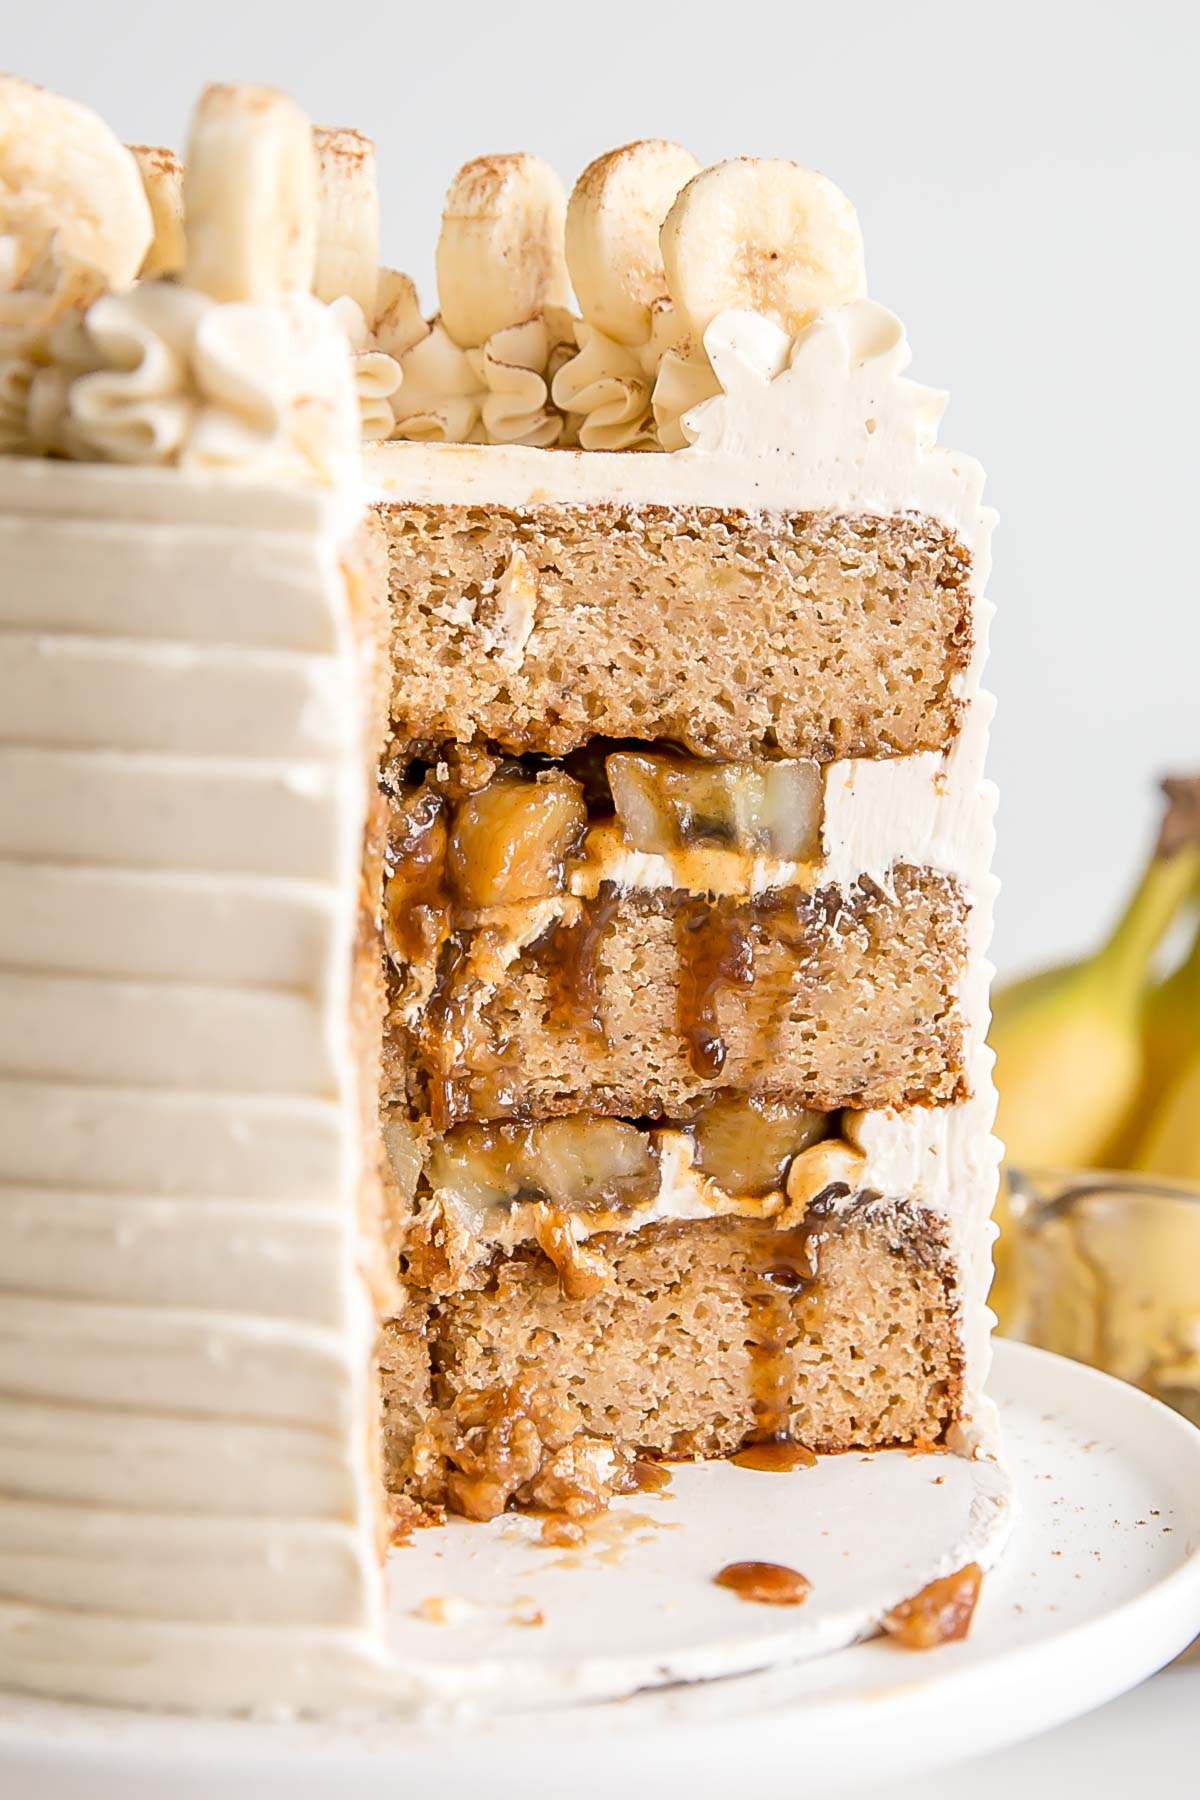 Cross section of a bananas foster cake with banana filling and fosters sauce.